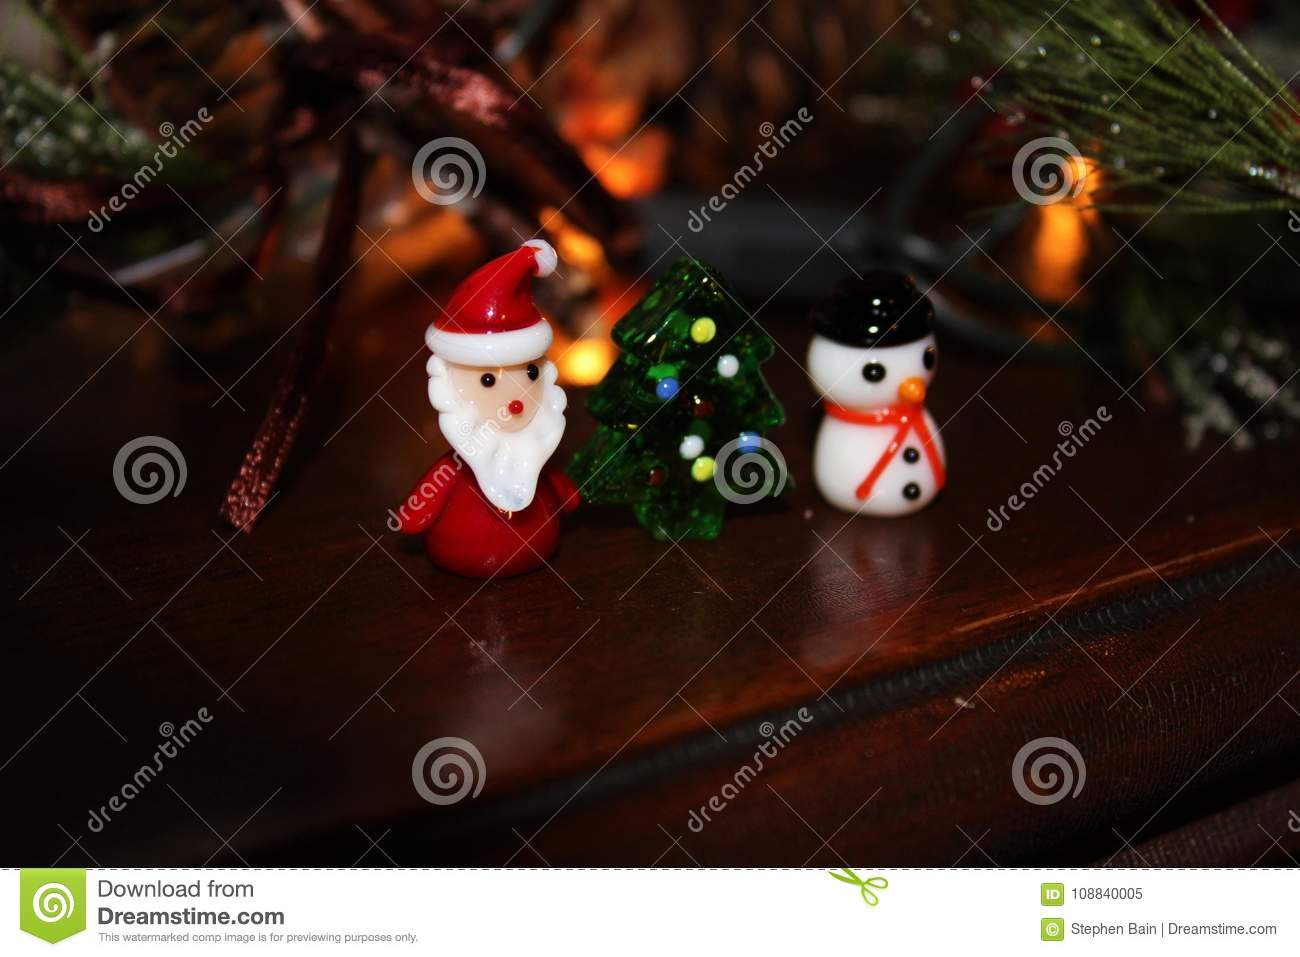 download christmas ornaments sitting on dark wooden piano with fir bows lights and ribbons stock